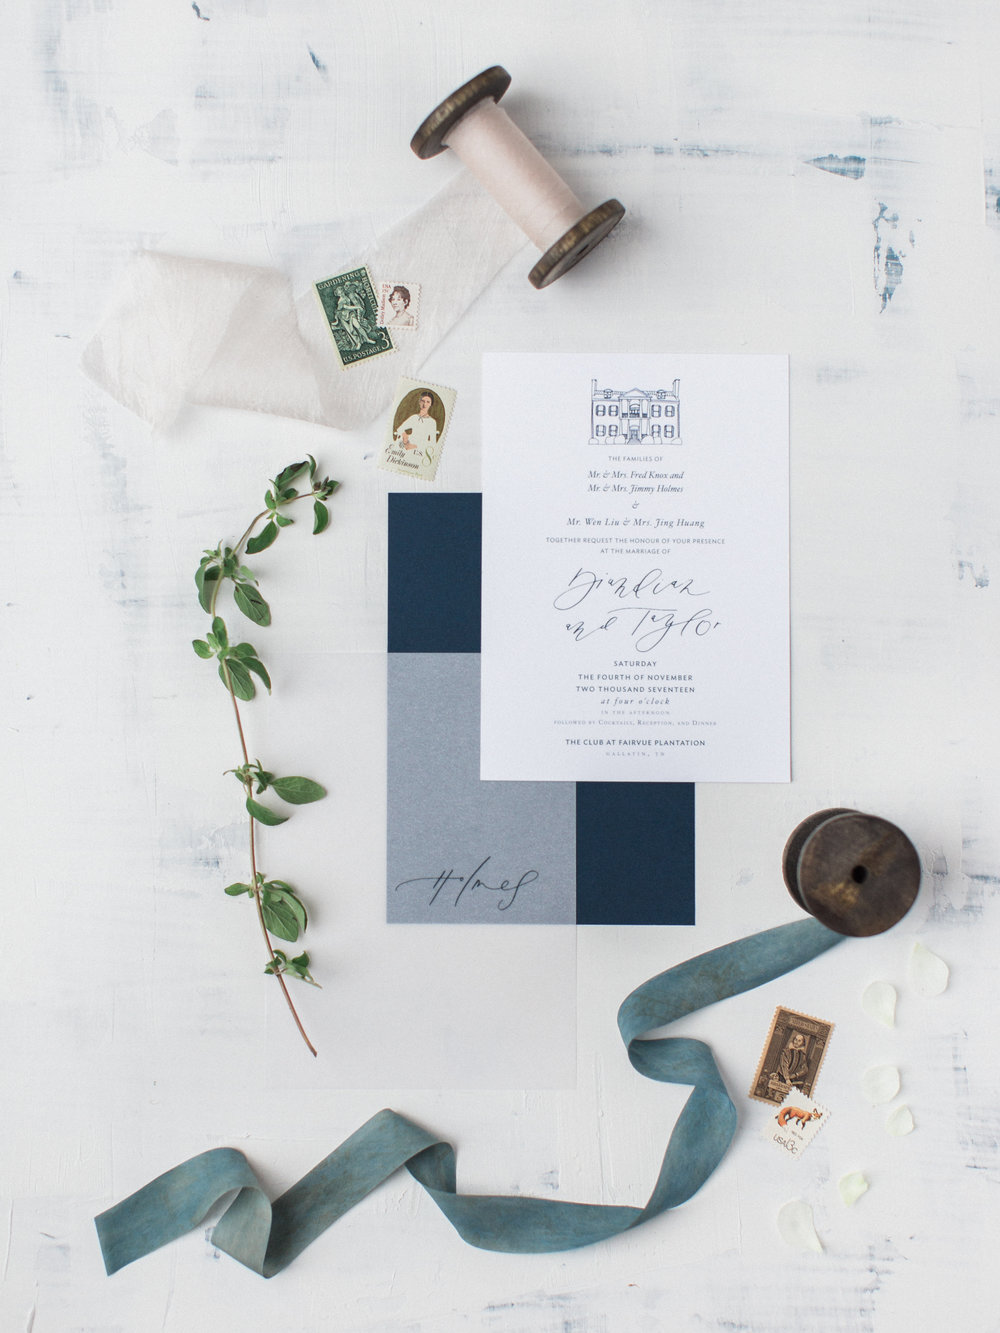 Planning & Design - Our philosophy is that one should never have to sacrifice elegance for a thoughtful, well-planned event. We pair our intuitive design process and signature style to create a one-of-a-kind event for you.Planning &CoordinationDay of StylingFull Event Design